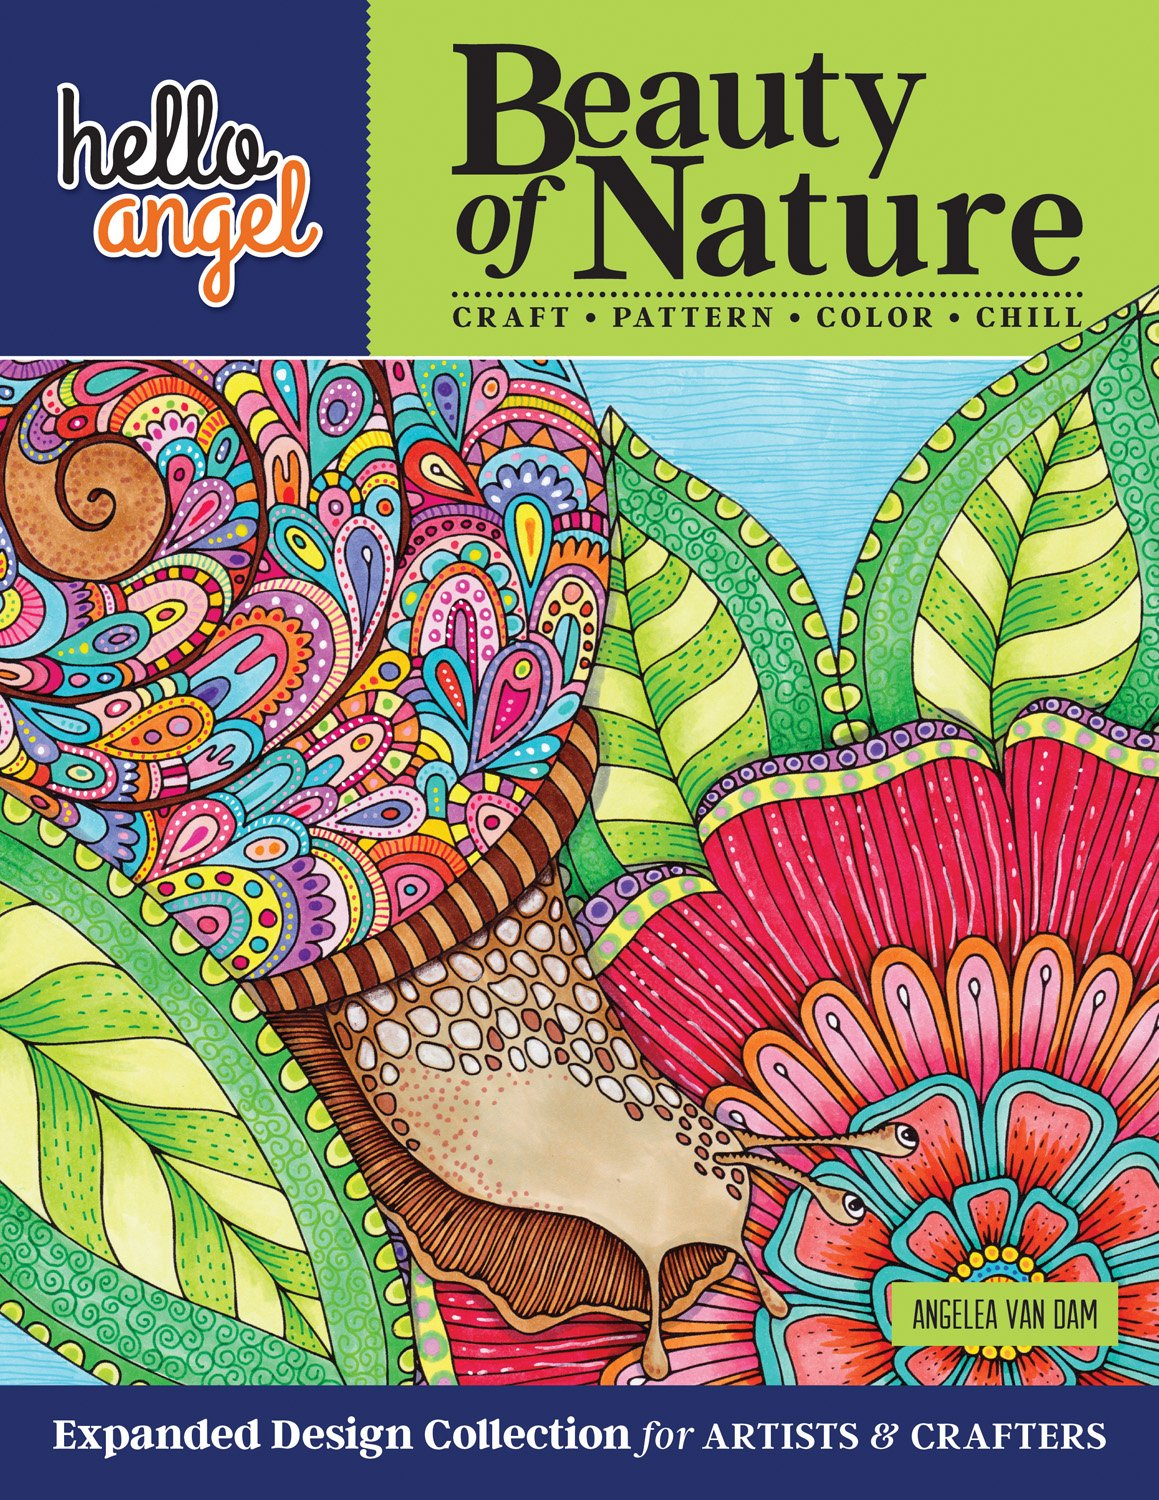 Hello Angel Beauty of Nature: Expanded Design Collection for Artists & Crafters - Craft, Pattern, Color, Chill